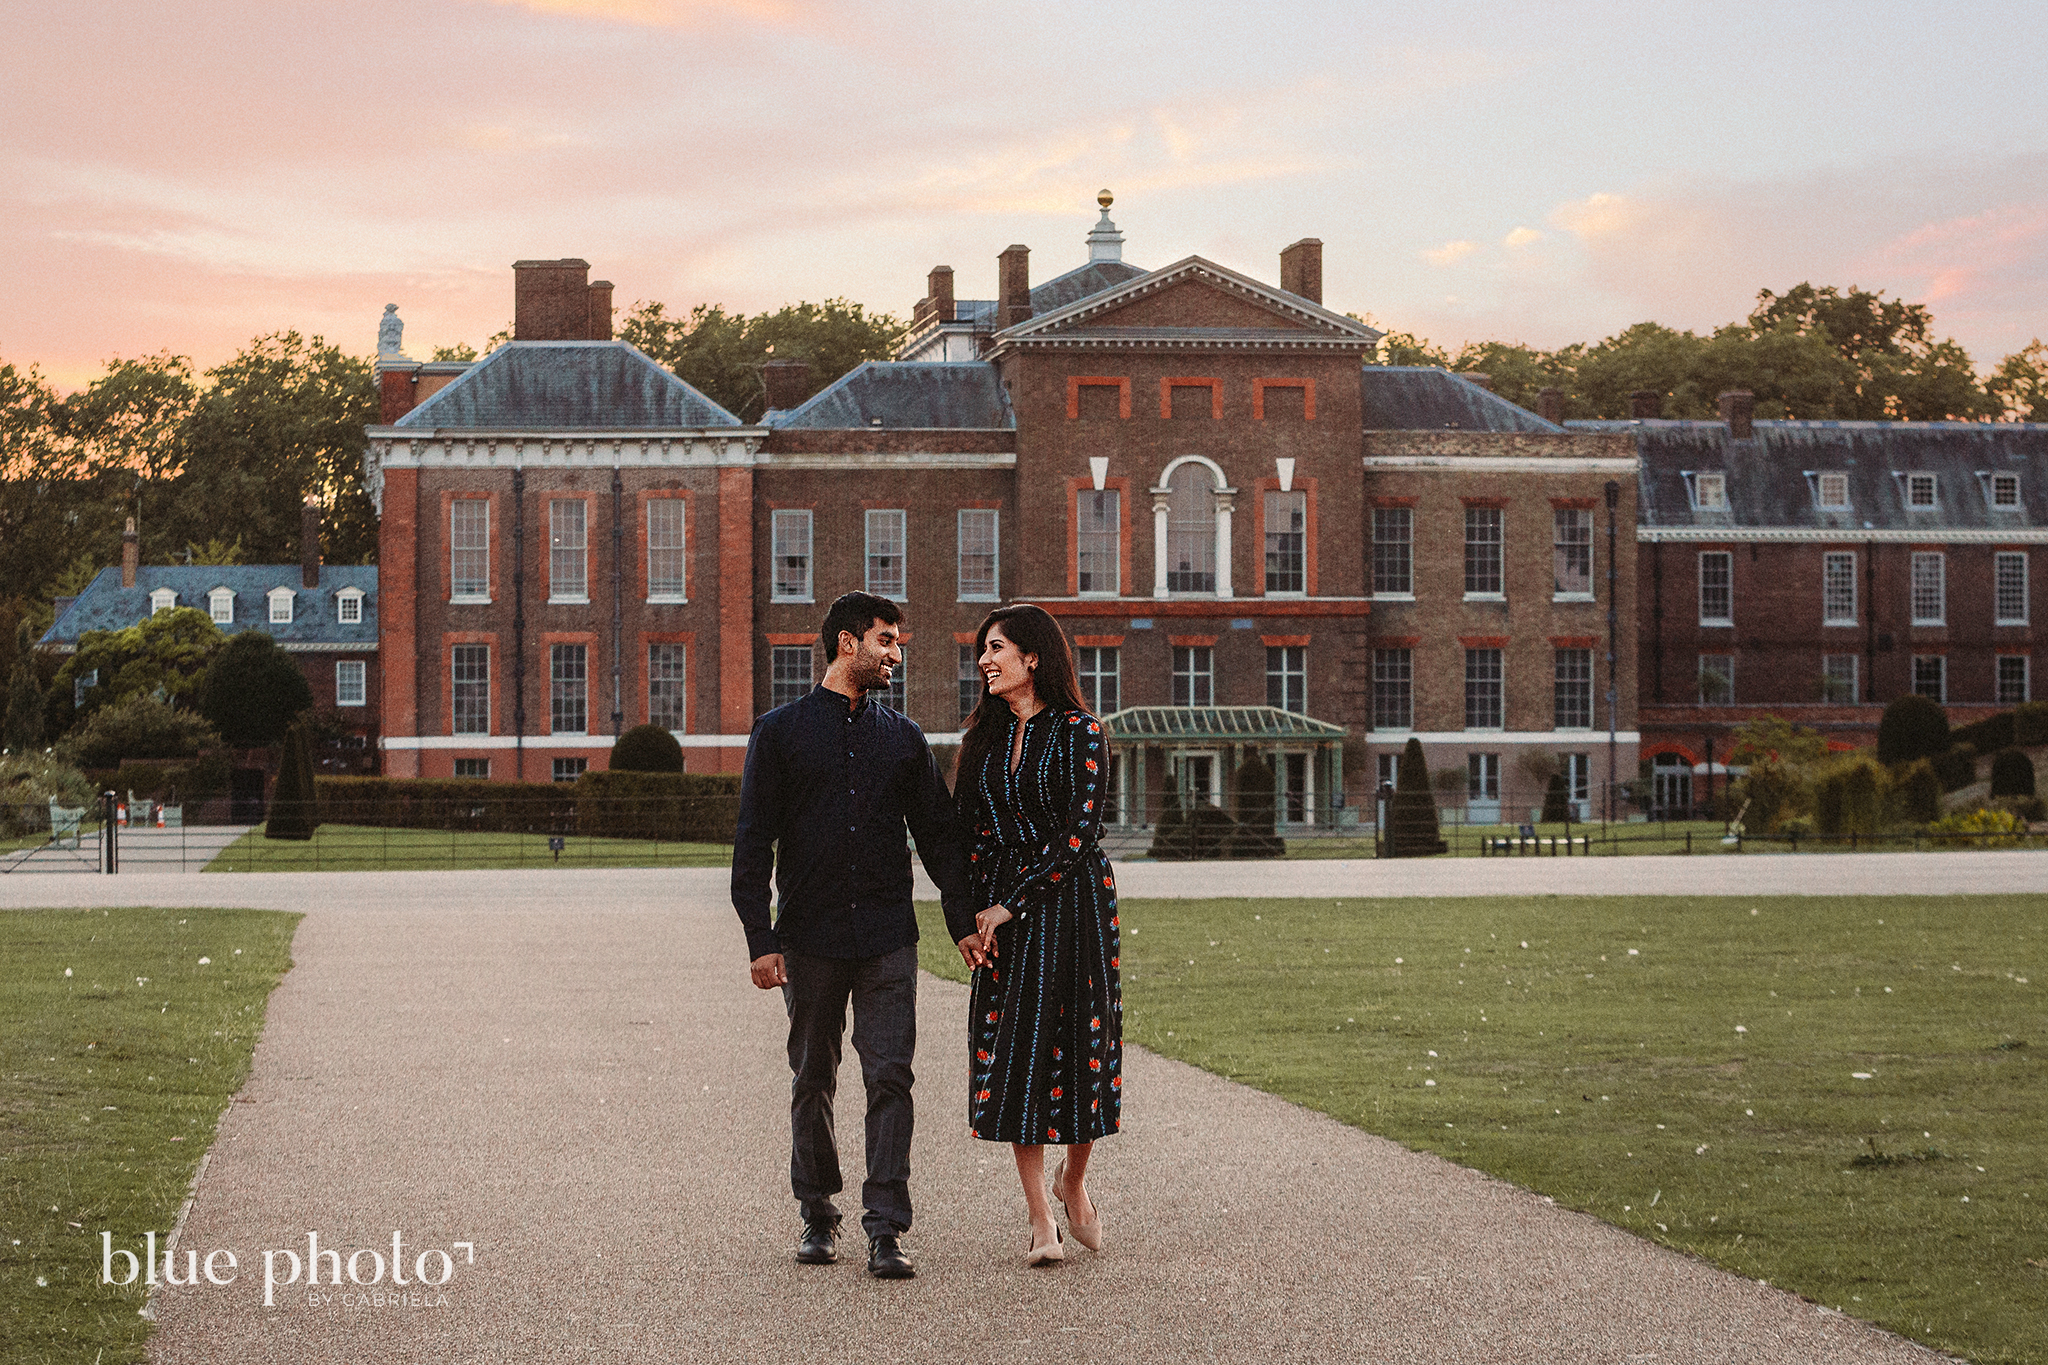 Engagement session in Kensingtom Gardens, Central London. A couple is walking, looking at each other and smilling.